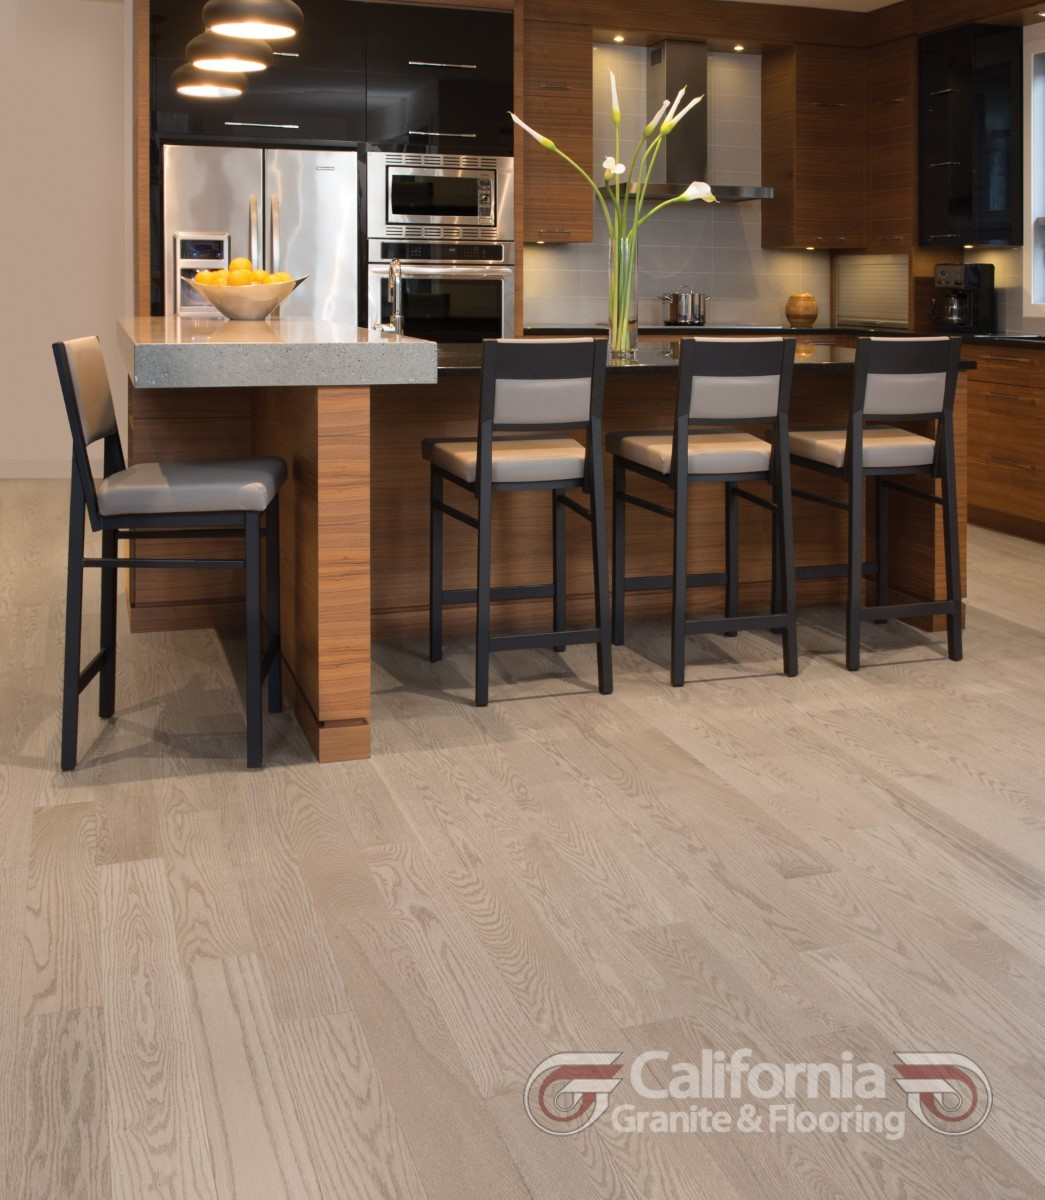 hardwood-flooring-red-oak-rio-exclusive-smooth-1